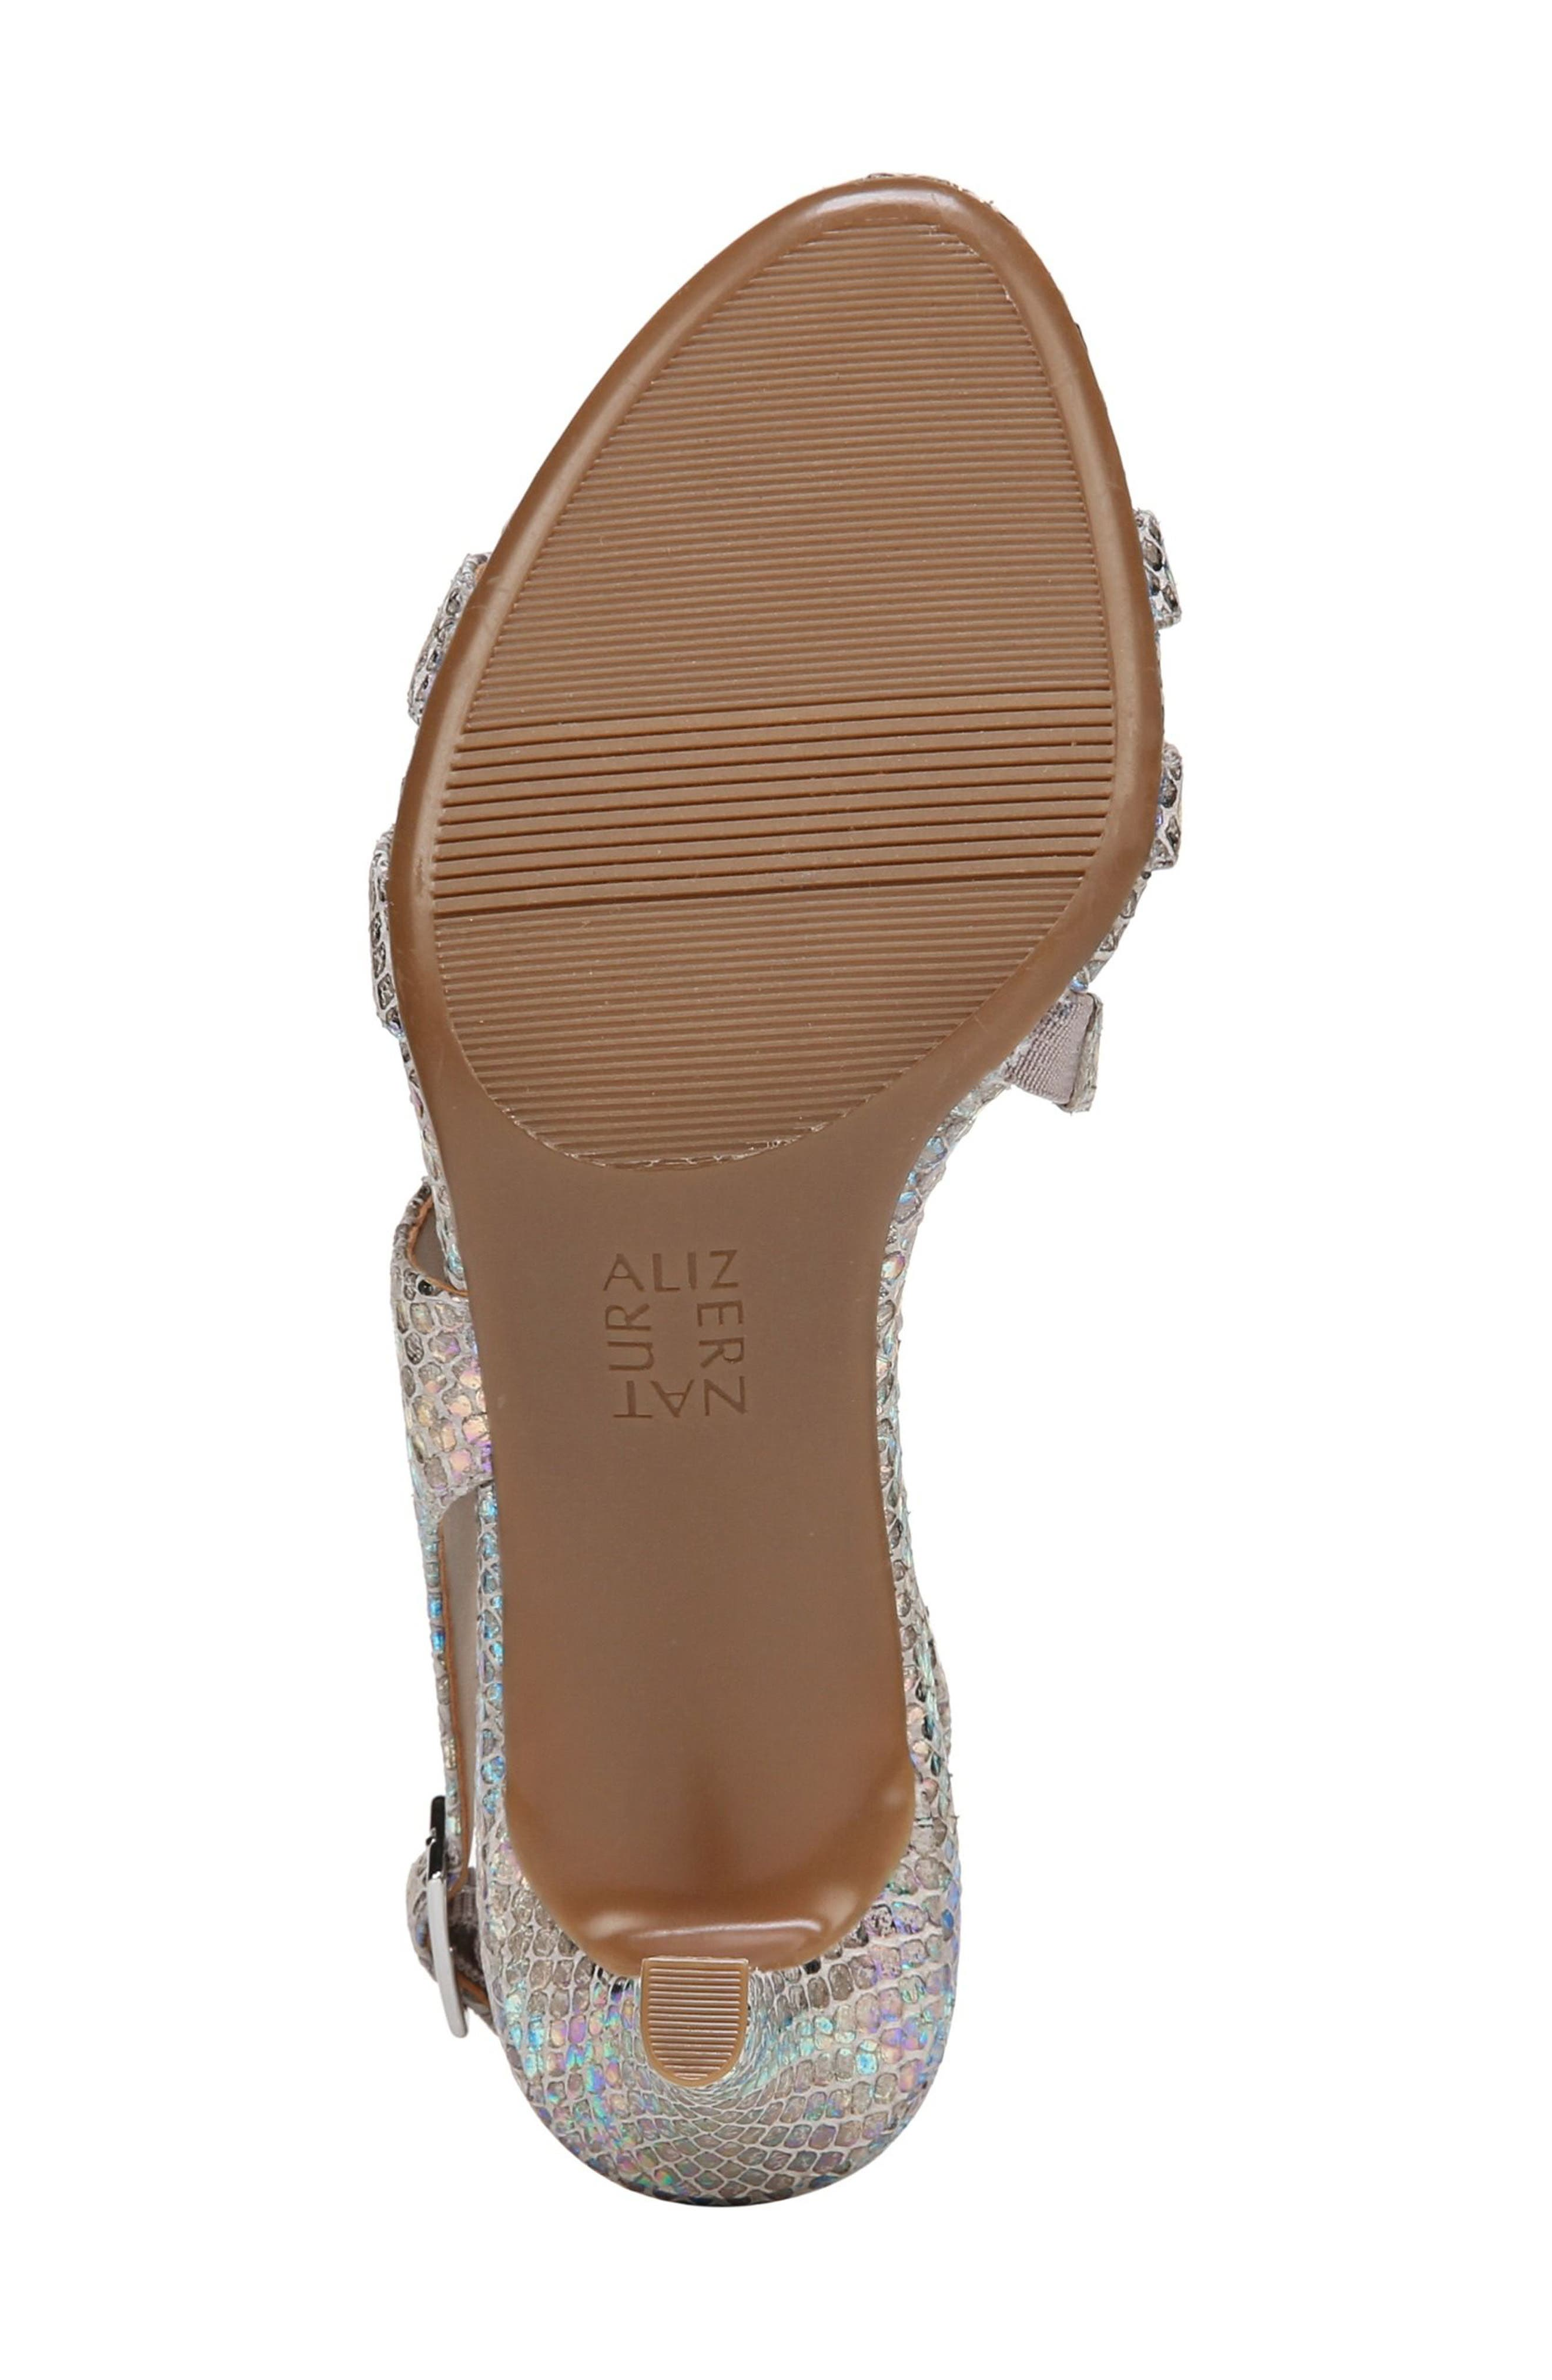 NATURALIZER, Taimi Sandal, Alternate thumbnail 6, color, SILVER SNAKE LEATHER PRINT